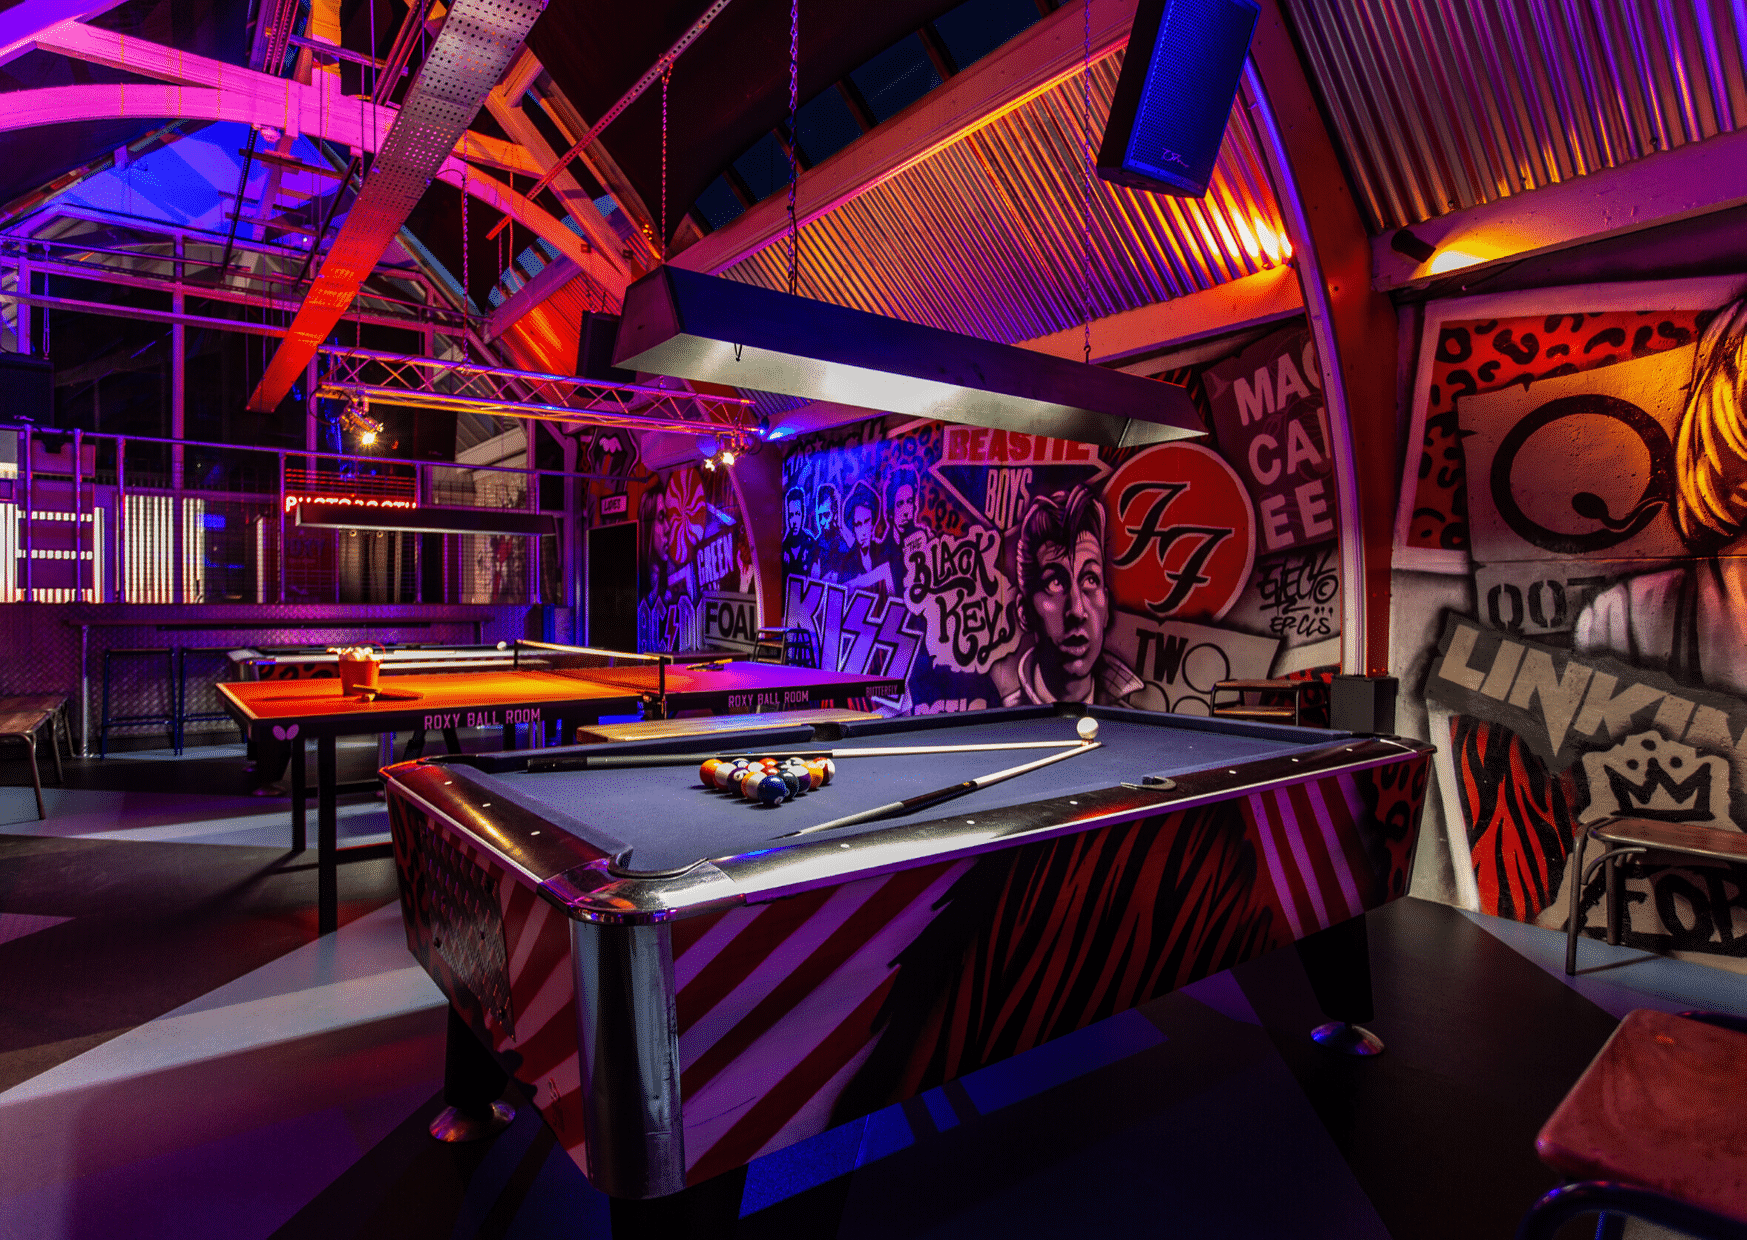 ROXY BALL ROOM MERRION STREET POOL & PING PONG